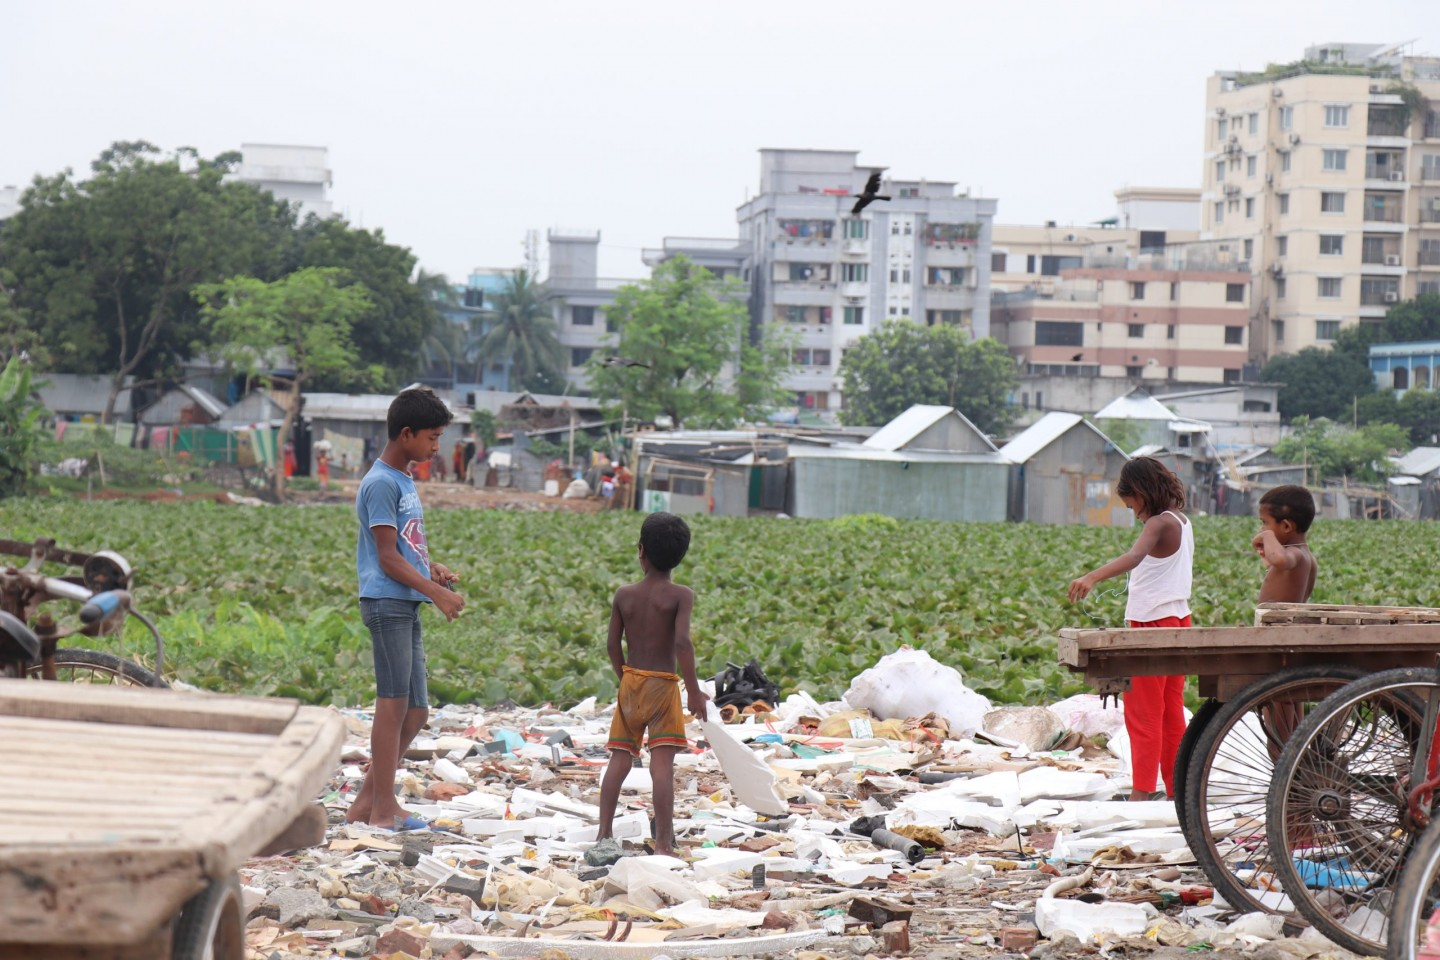 Unplanned residence and uncollected waste: the cost of urbanisation in Karail Slum, Dhaka. Credit: Khulna University.